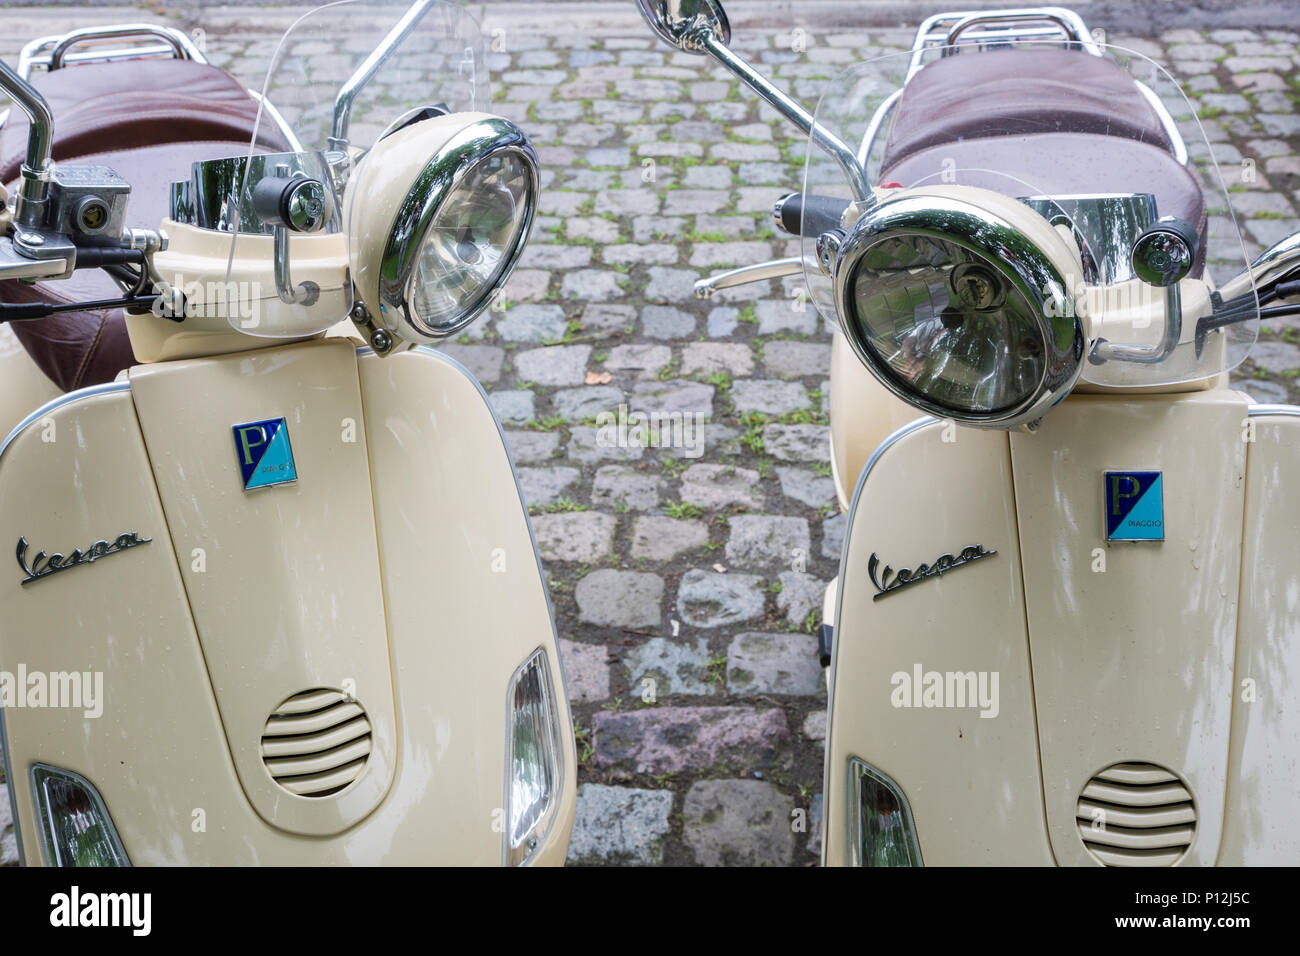 Two Vespa LXV 125 scooters parked - Stock Image